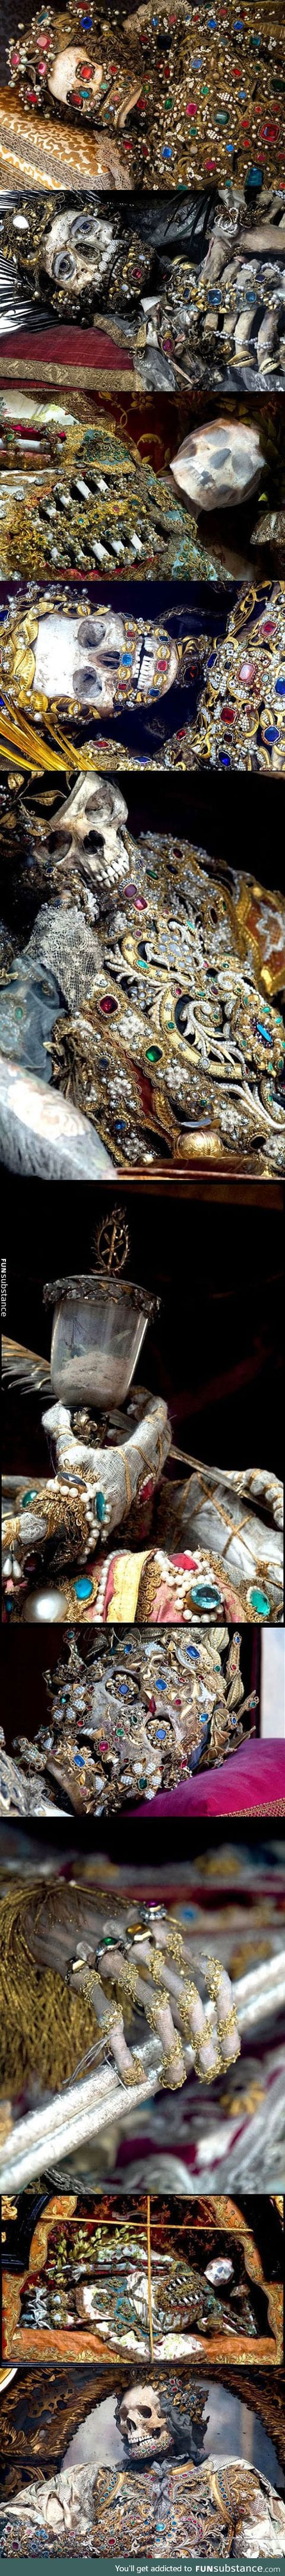 Skeletons unearthed from the catacombs of rome